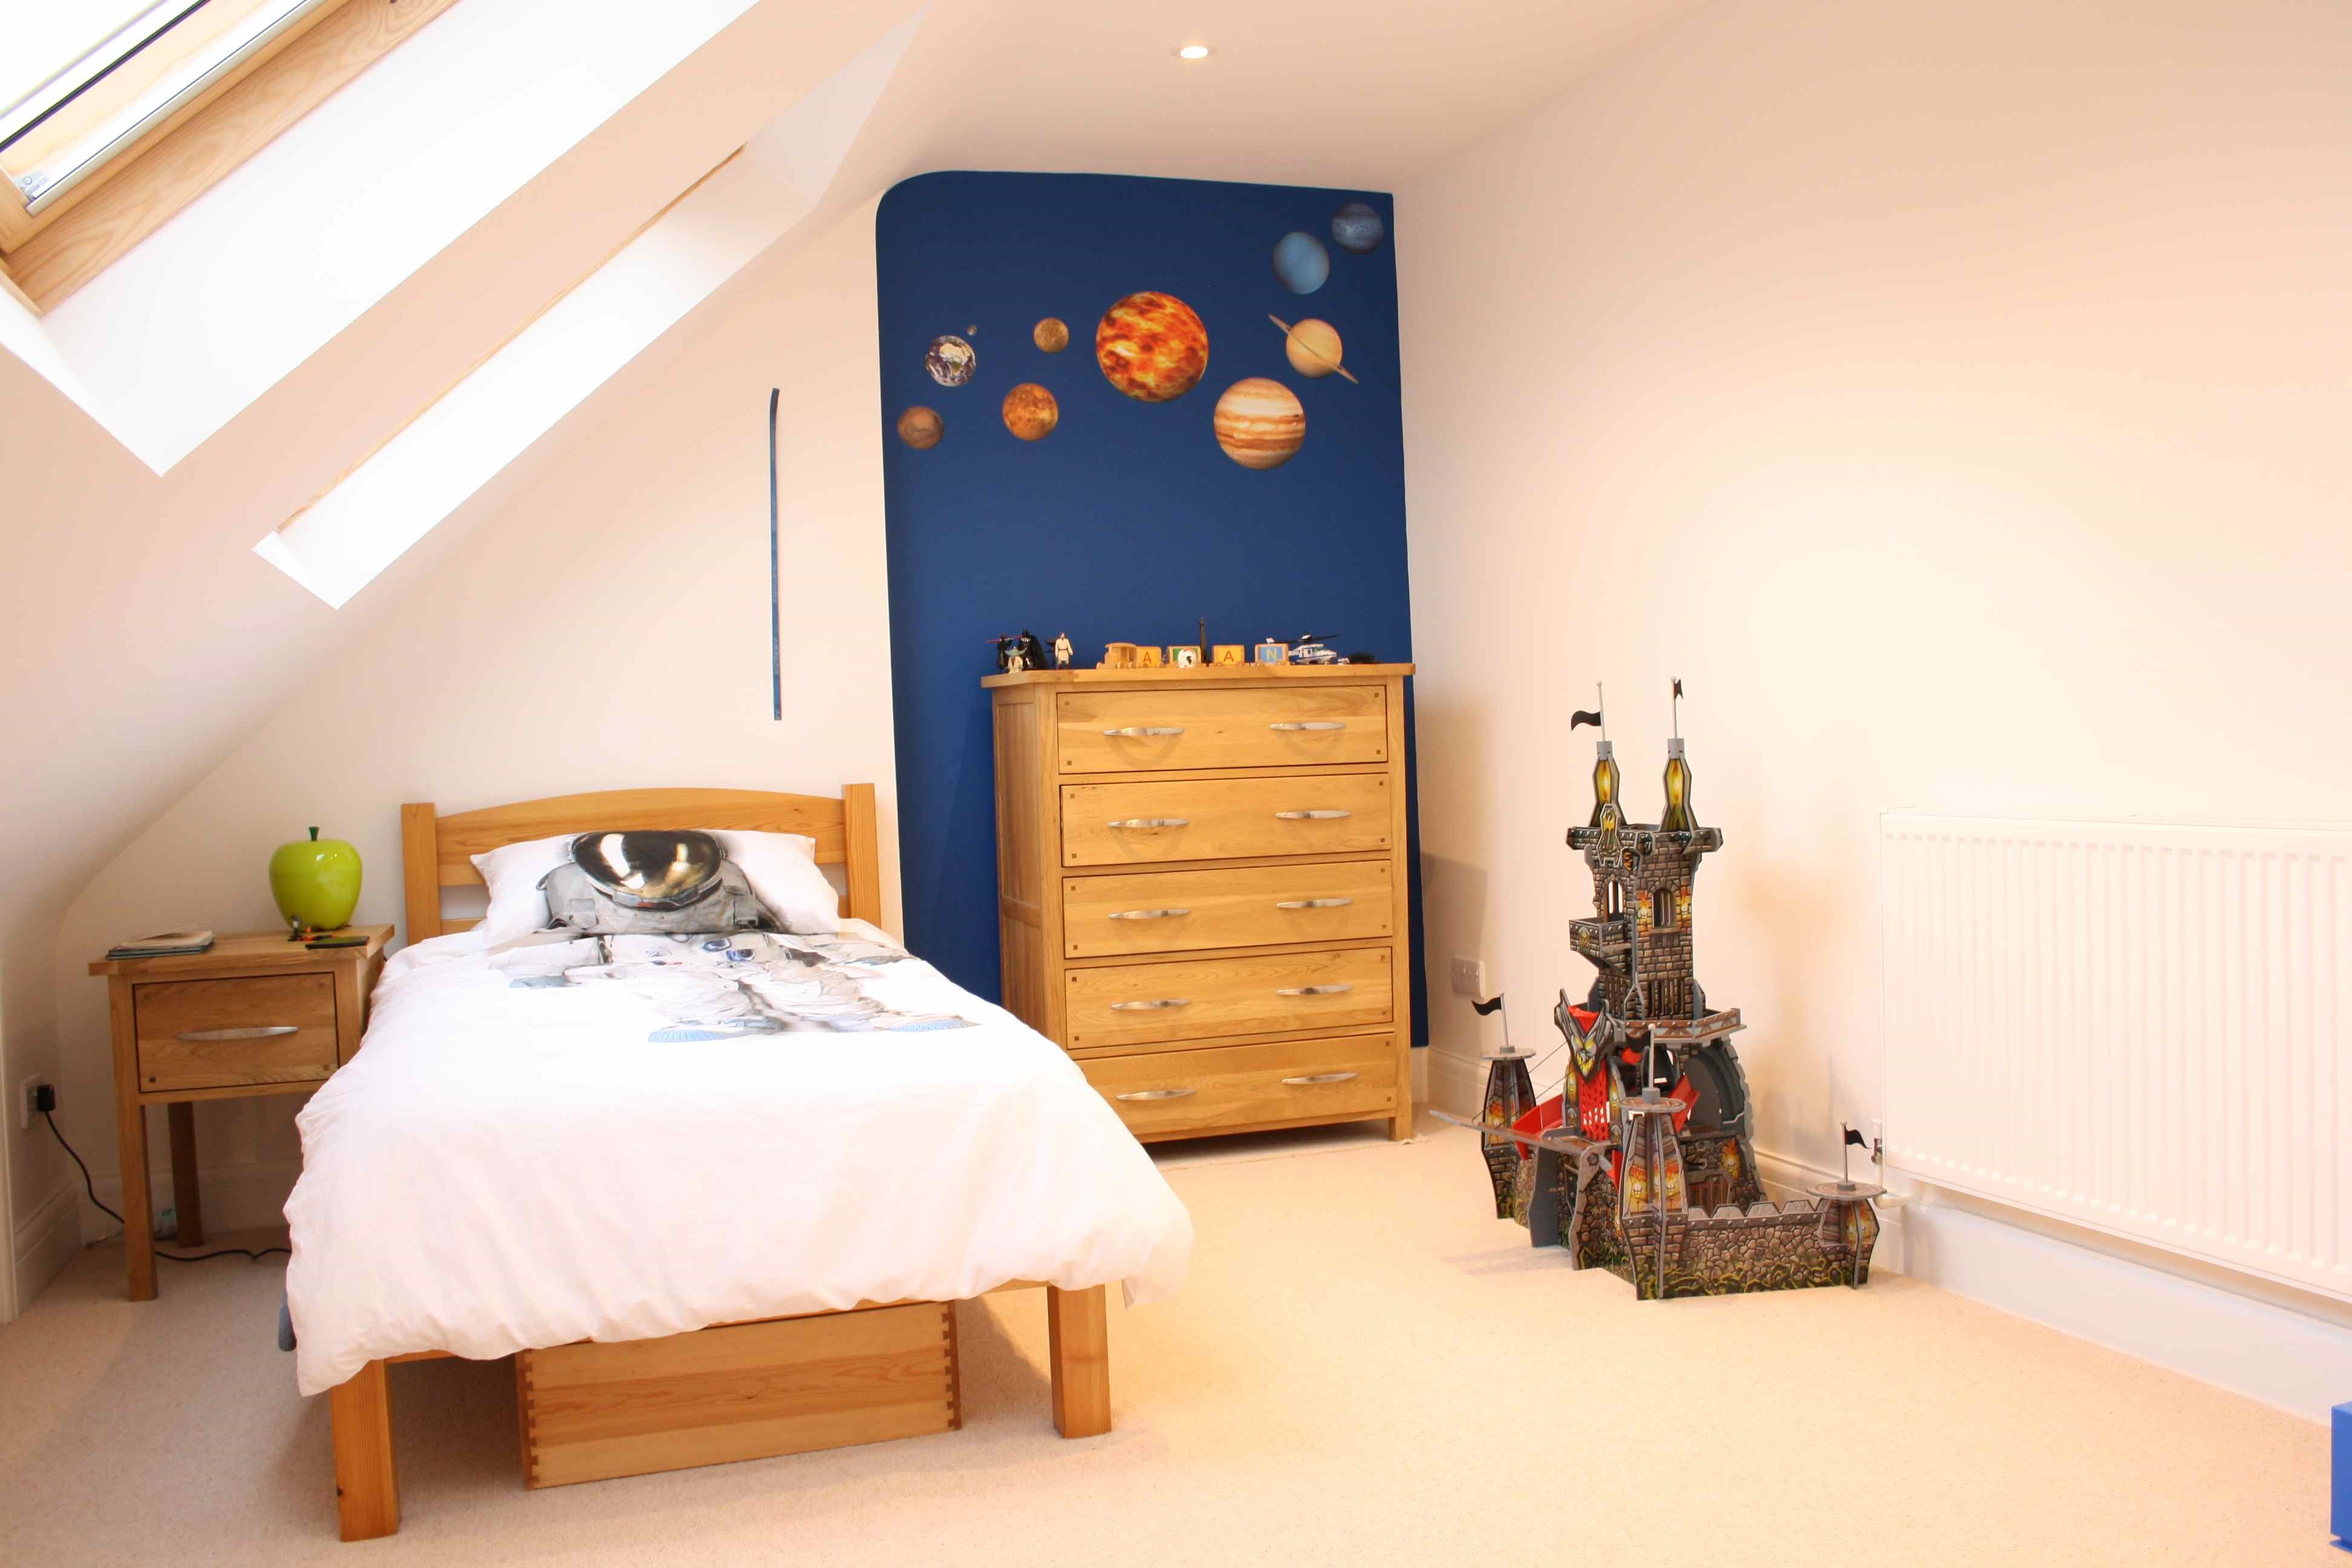 Childrens bedroom loft conversion2